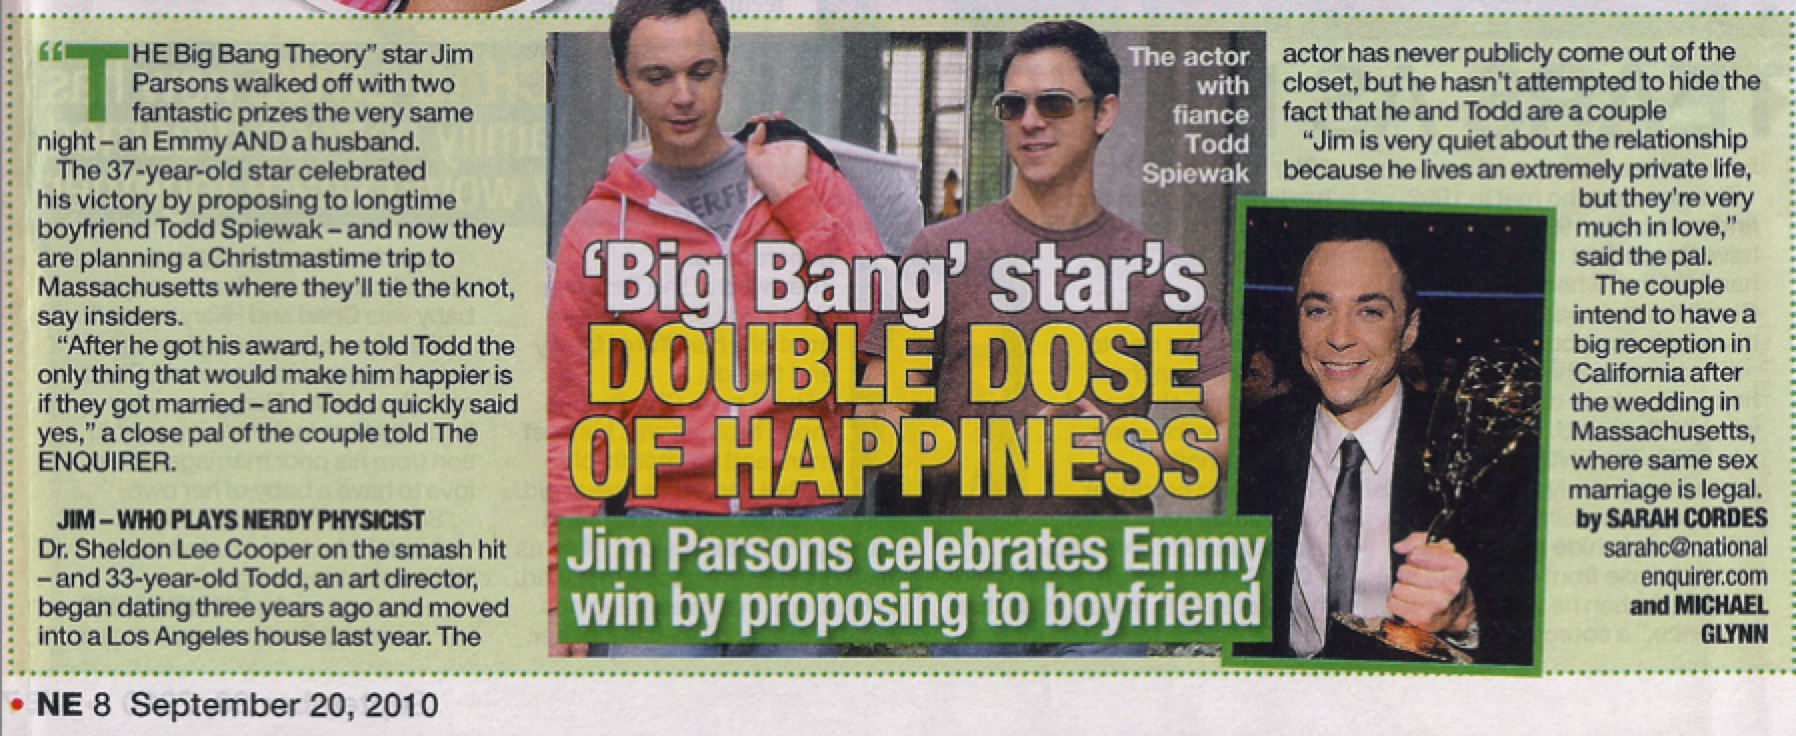 Big Bang Theory's Jim Parsons Is Engaged! To Boyfriend Todd Spiewak!